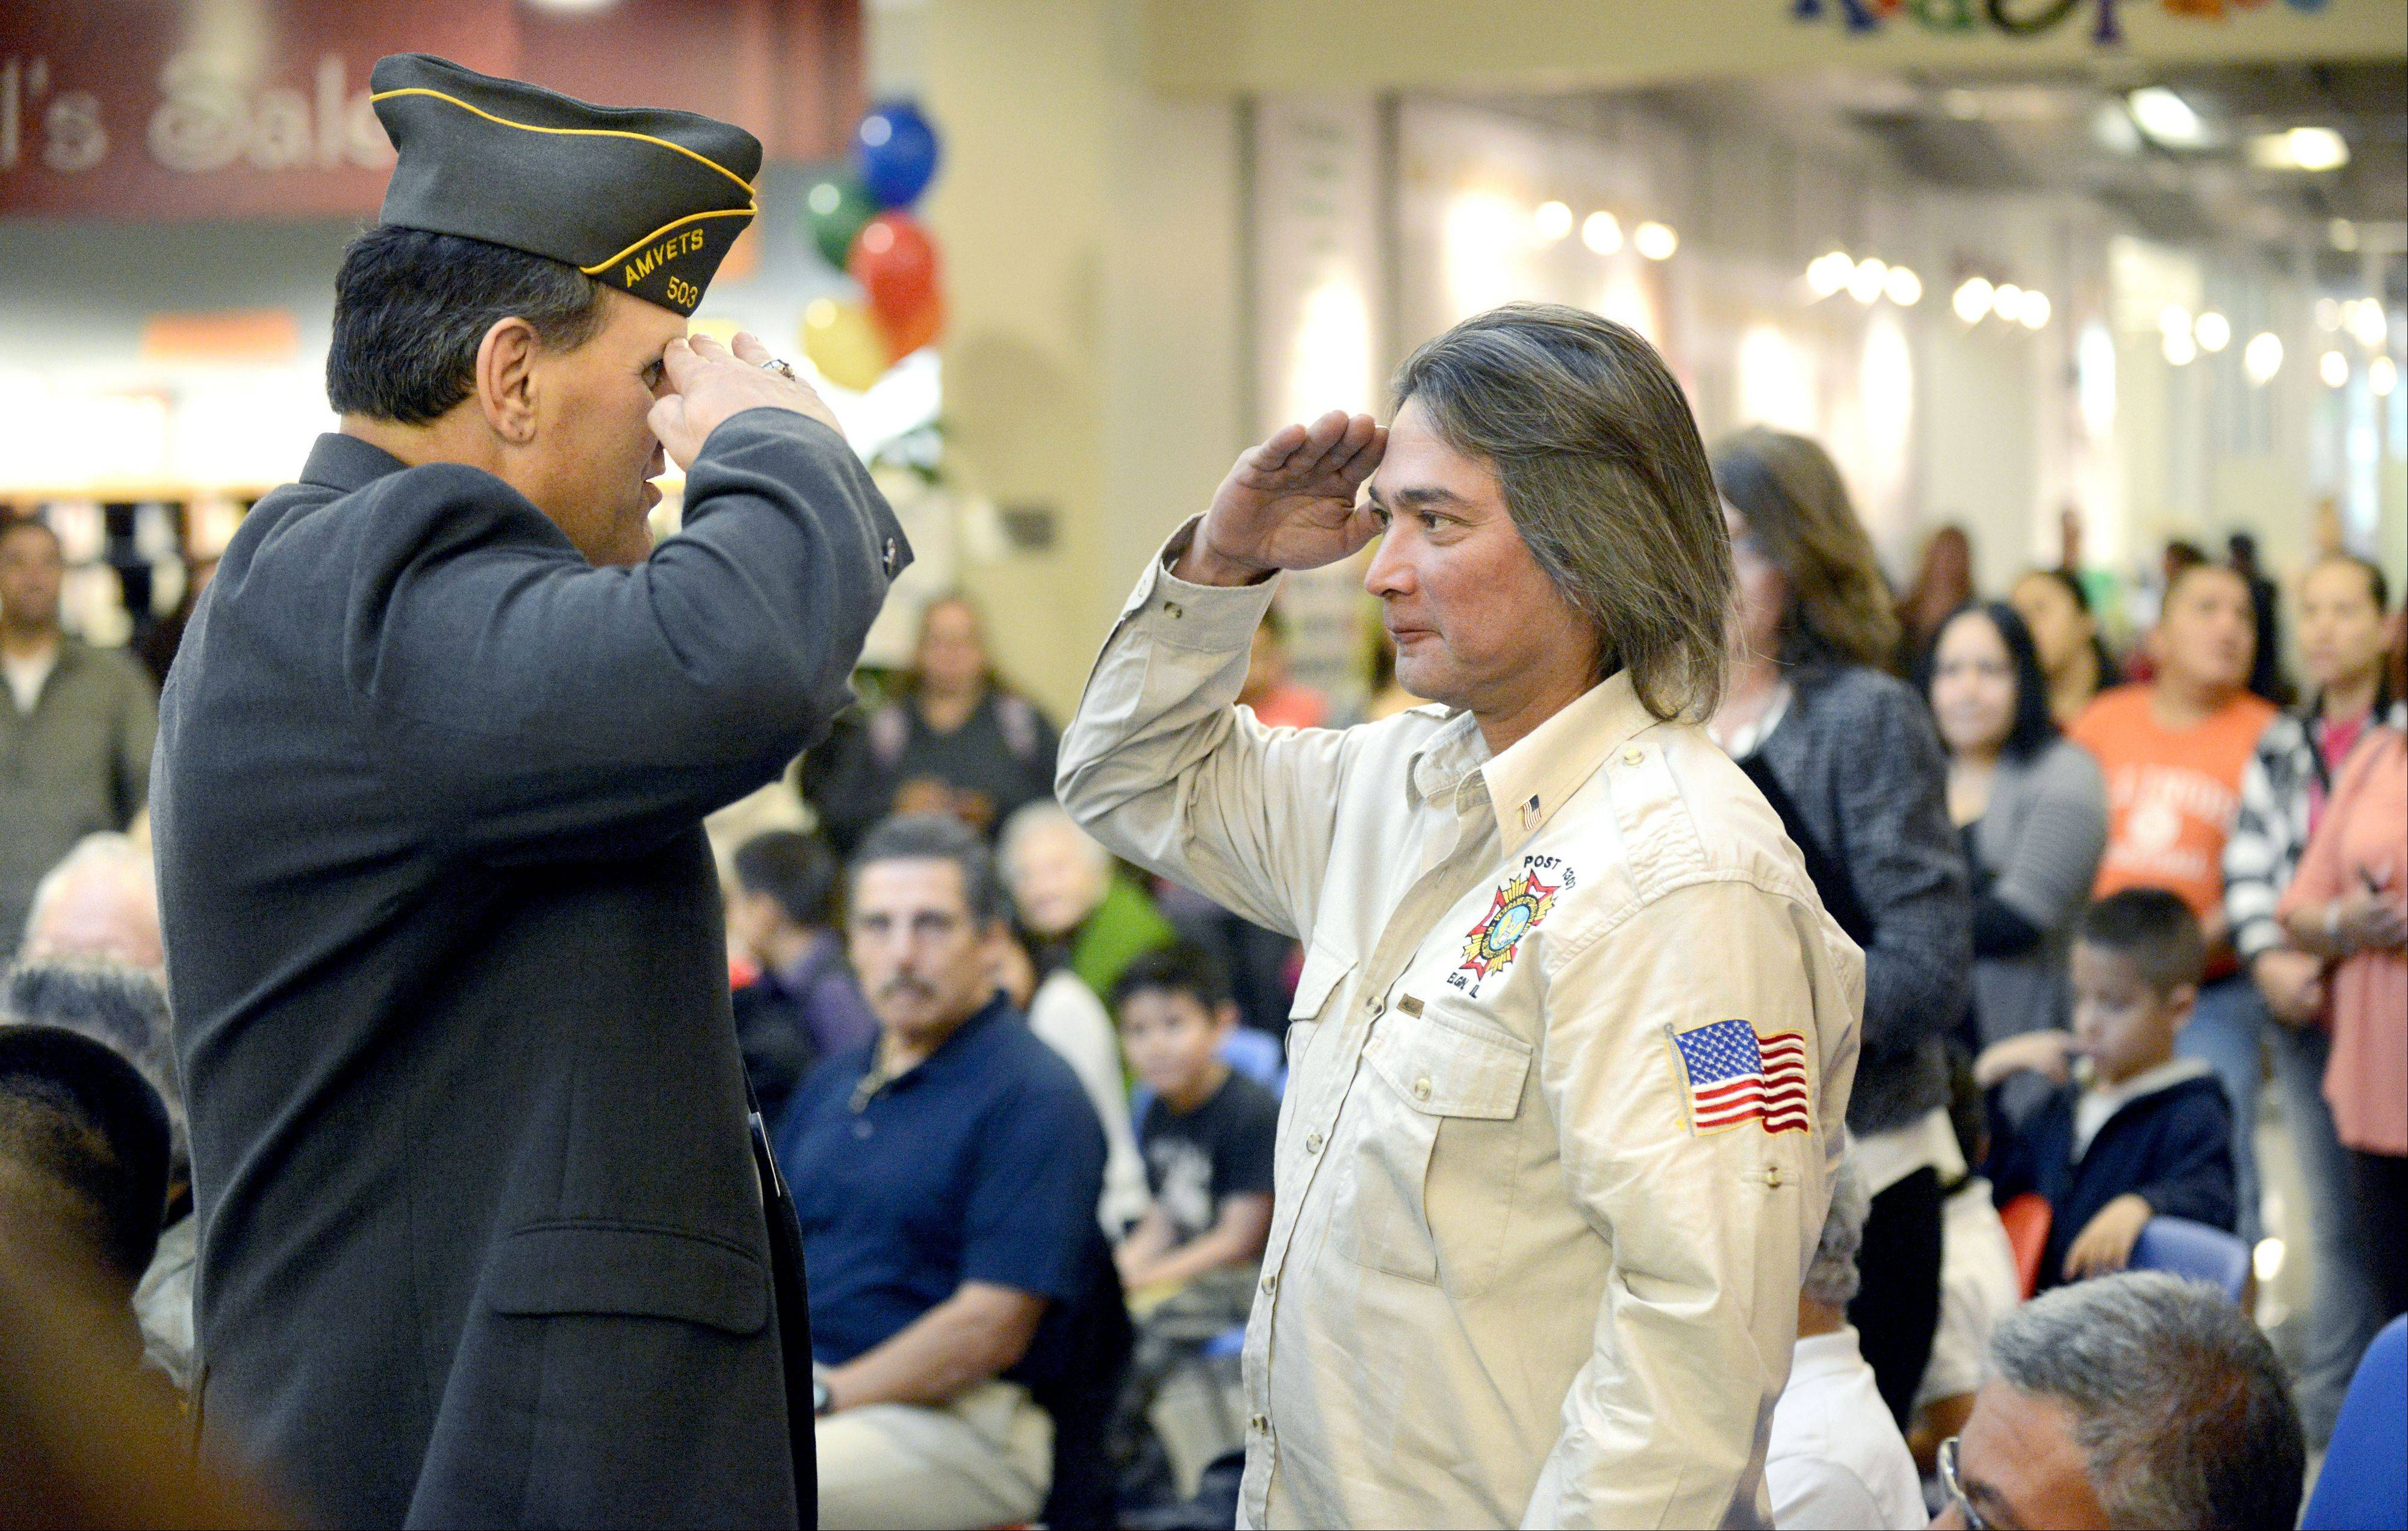 Army veteran Andrew Balafas, left, salutes Navy veteran Rupert Siete of Elgin after presenting him with a certificate of appreciation for his military service and giving him an American flag pin at the veterans ceremony kicking off the Hispanic Heritage Month Celebration at Gail Borden Public Library in Elgin.